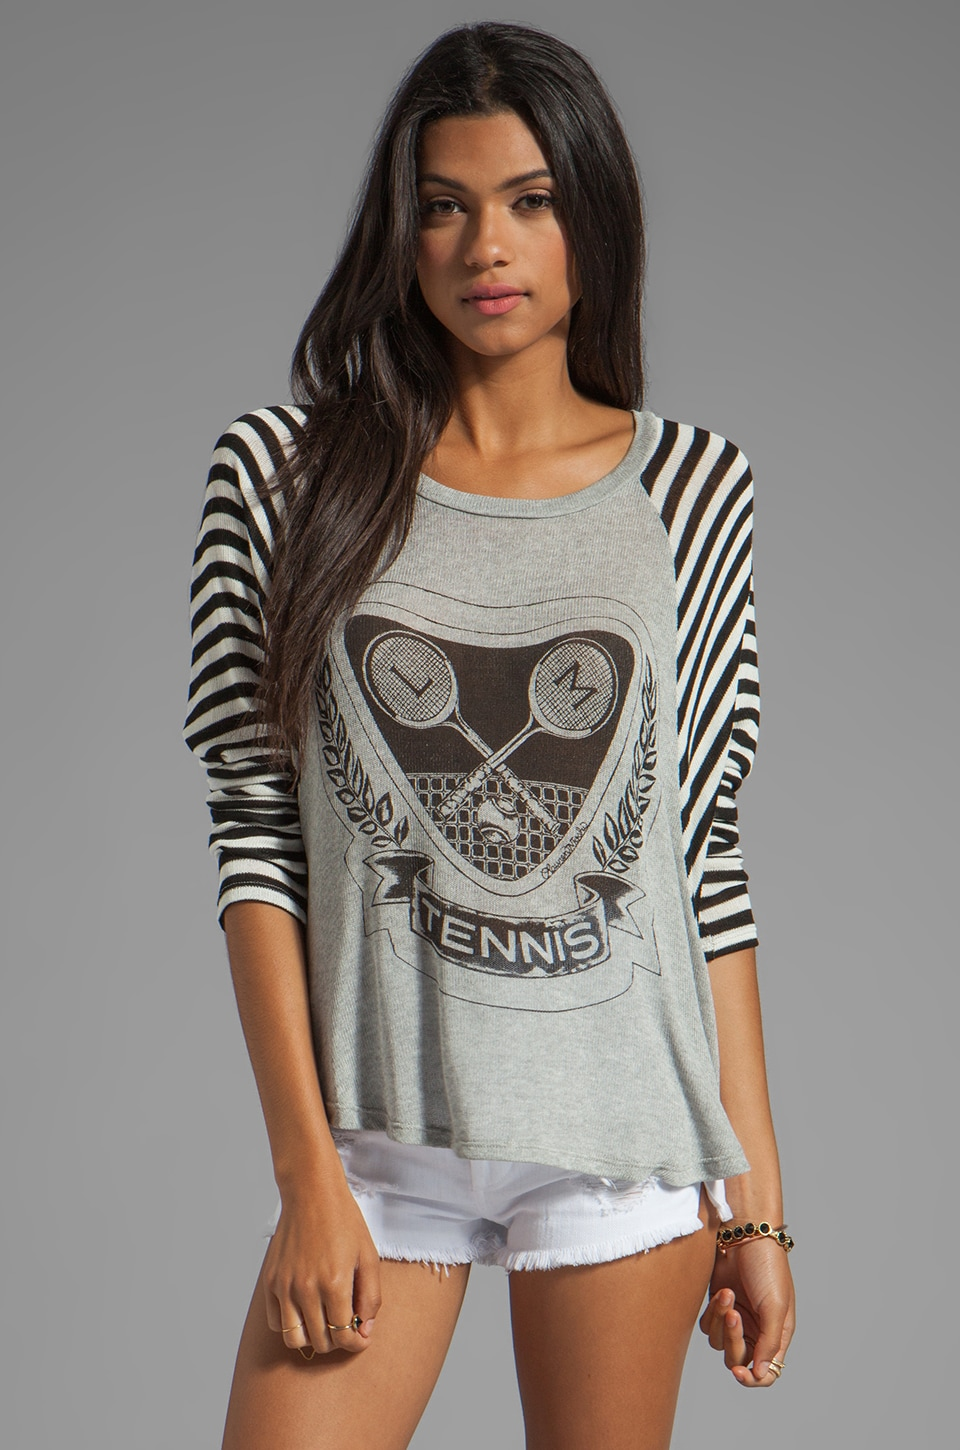 Lauren Moshi Goldy Tennis Raglan Sweater in Heather Grey/Stripe